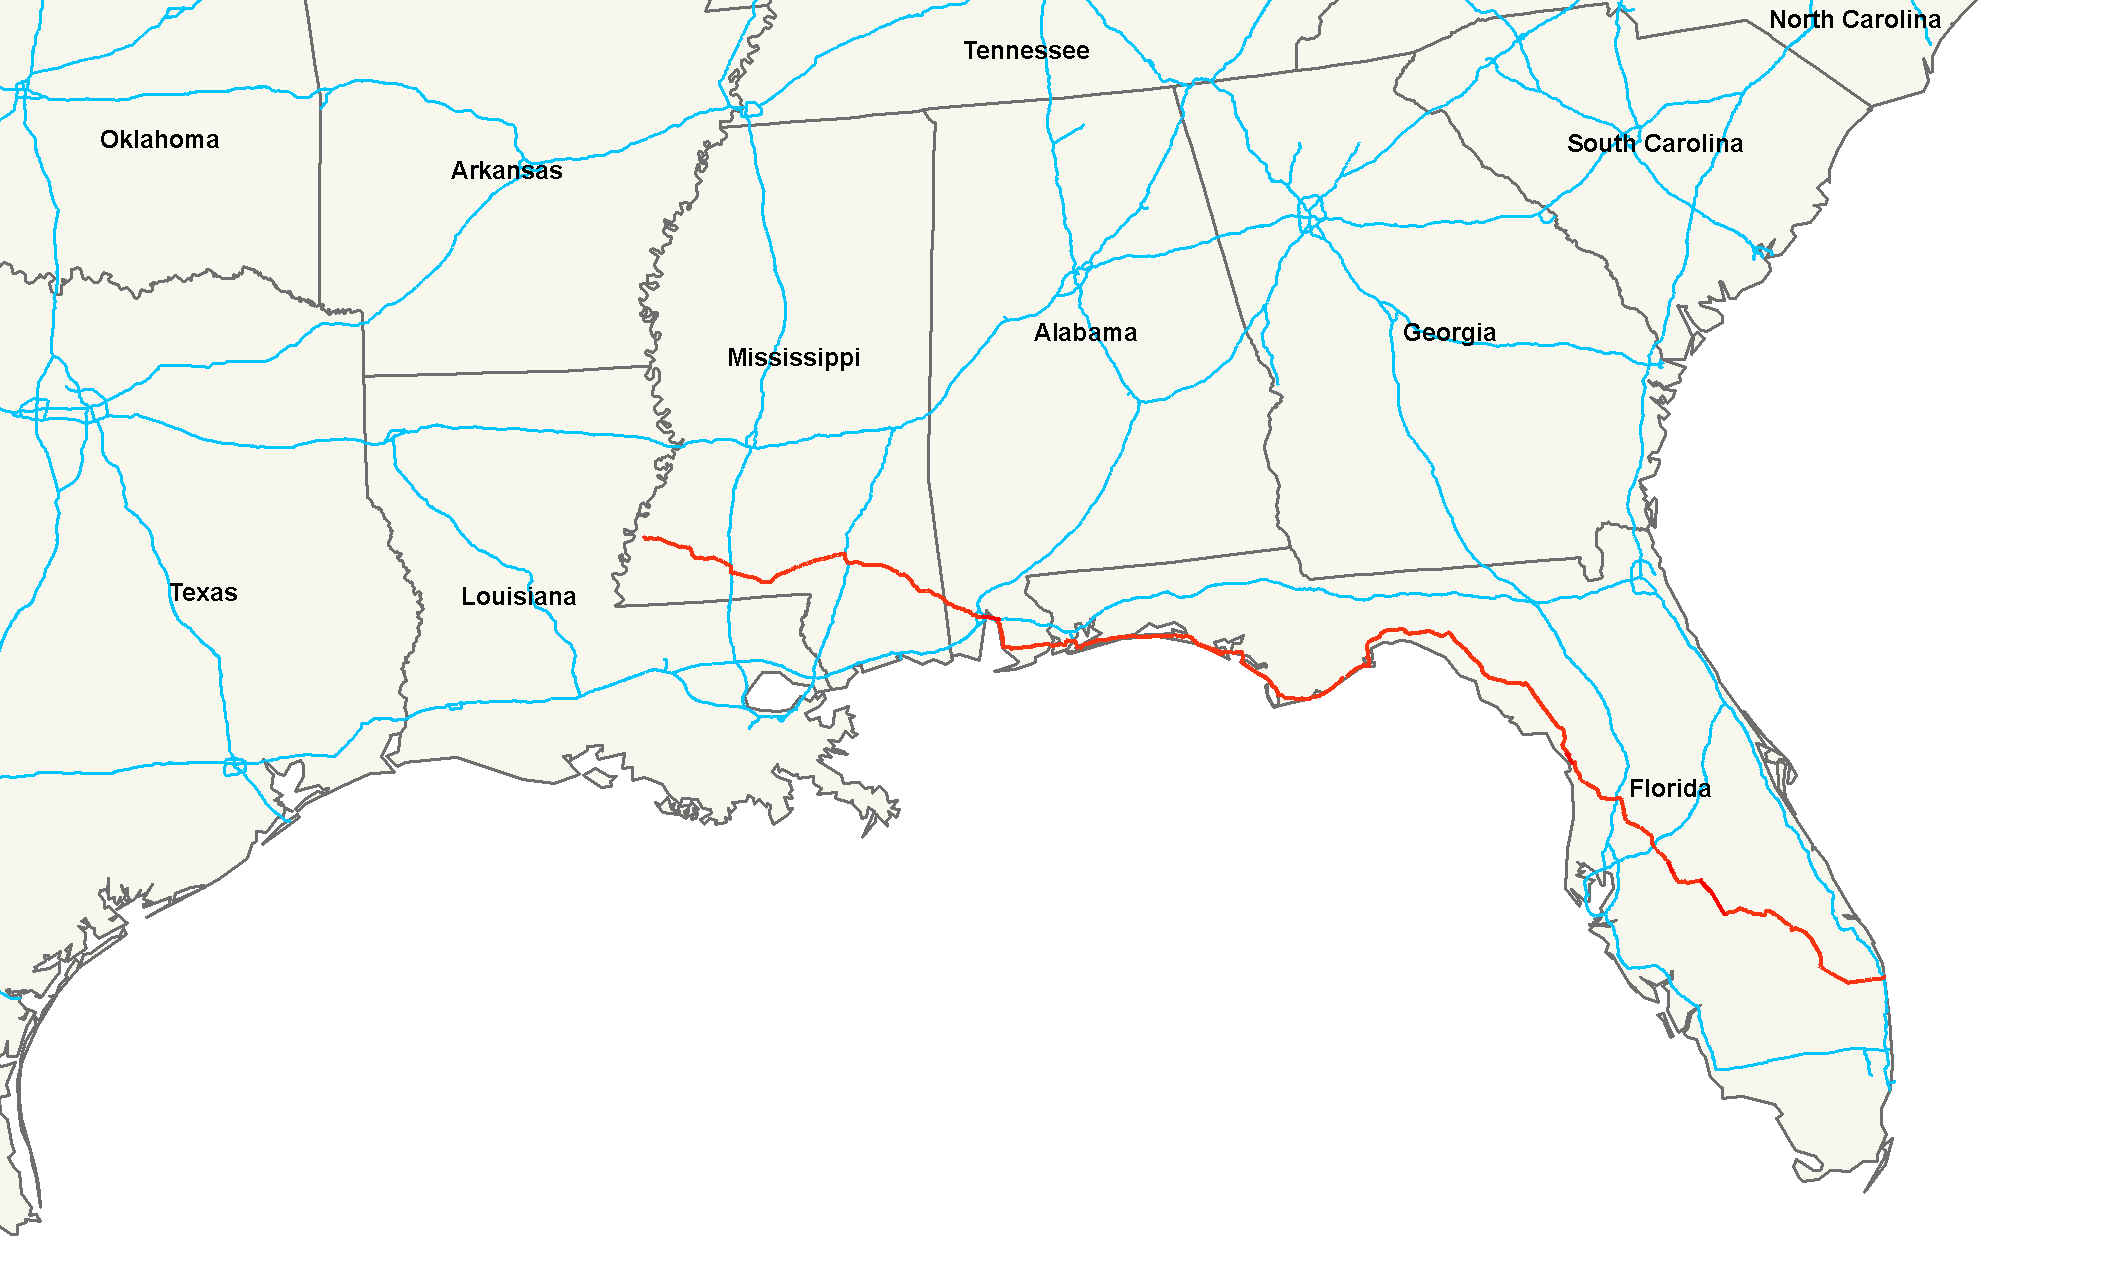 U.S. Route 98 - Wikipedia on interstate highway map, interstate map of alabama showing, interstate highways in georgia, interstate map of montgomery alabama, cahaba river alabama, interstate 20 map alabama, mobile alabama, i-20 alabama,